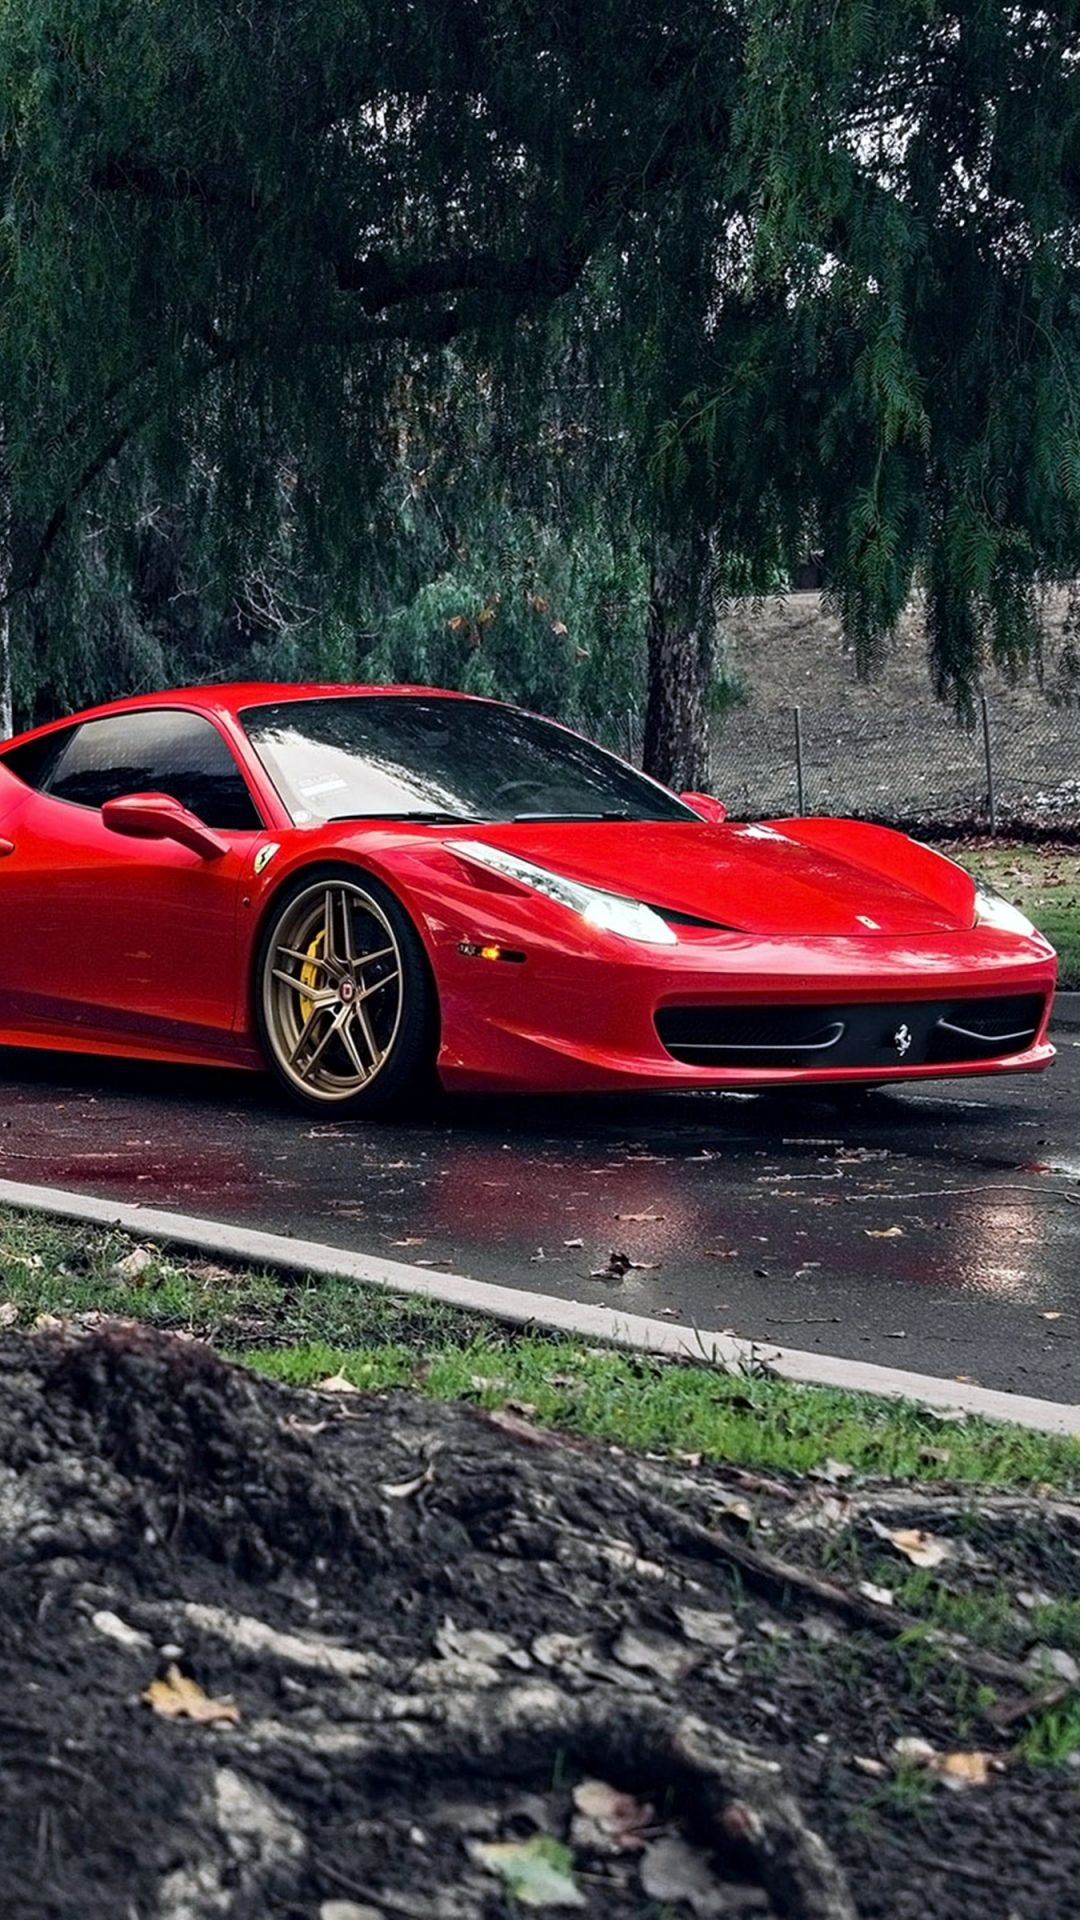 72c61638e673 Vehicles Ferrari 458 Italia Ferrari Ferrari 458 Car Red Car Supercar Mobile  Wallpaper